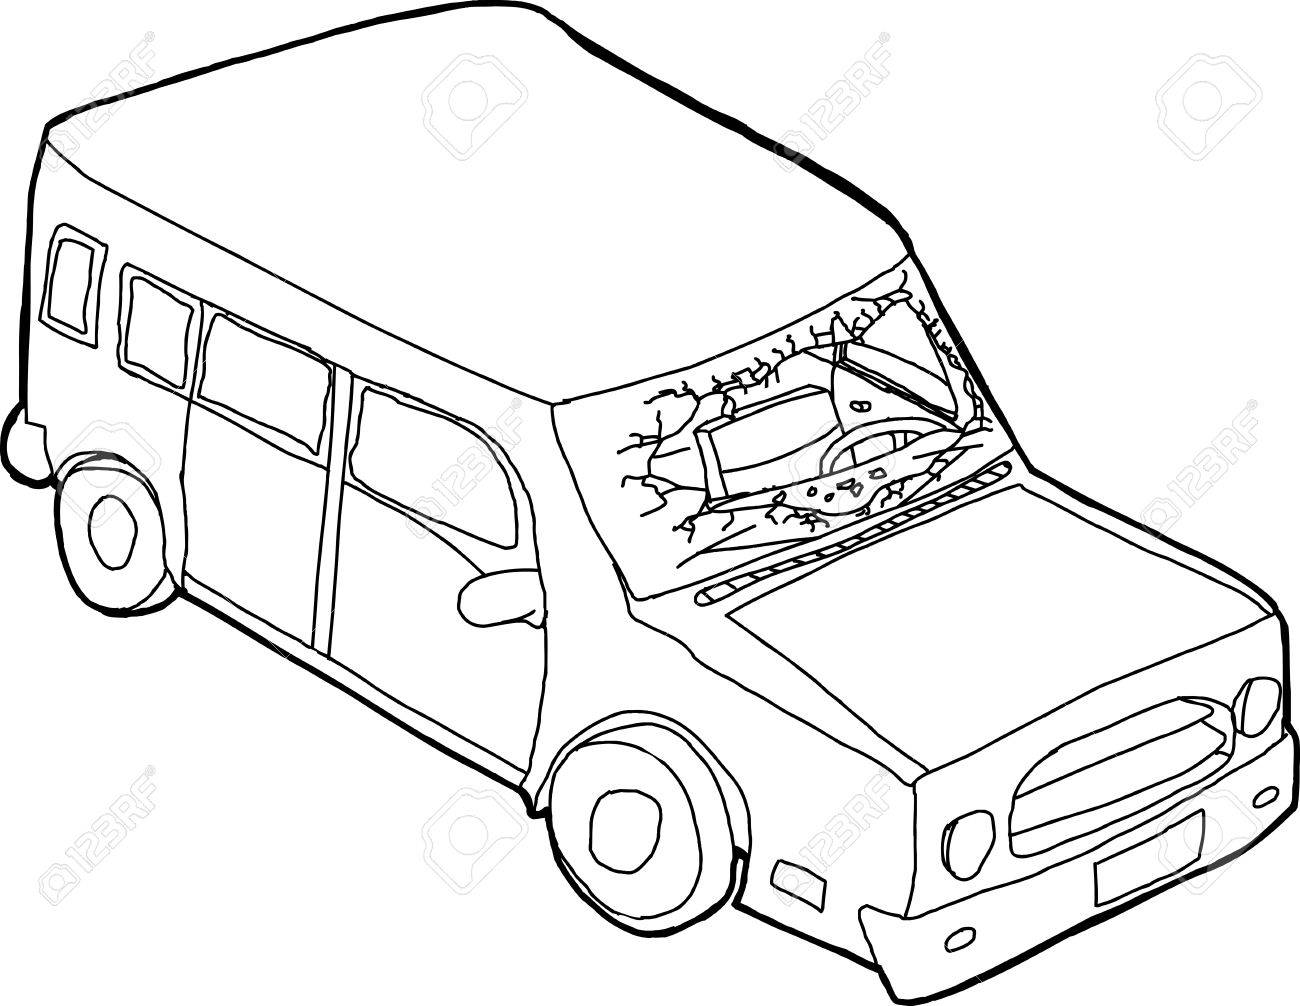 Front Of Car Drawing At Getdrawings